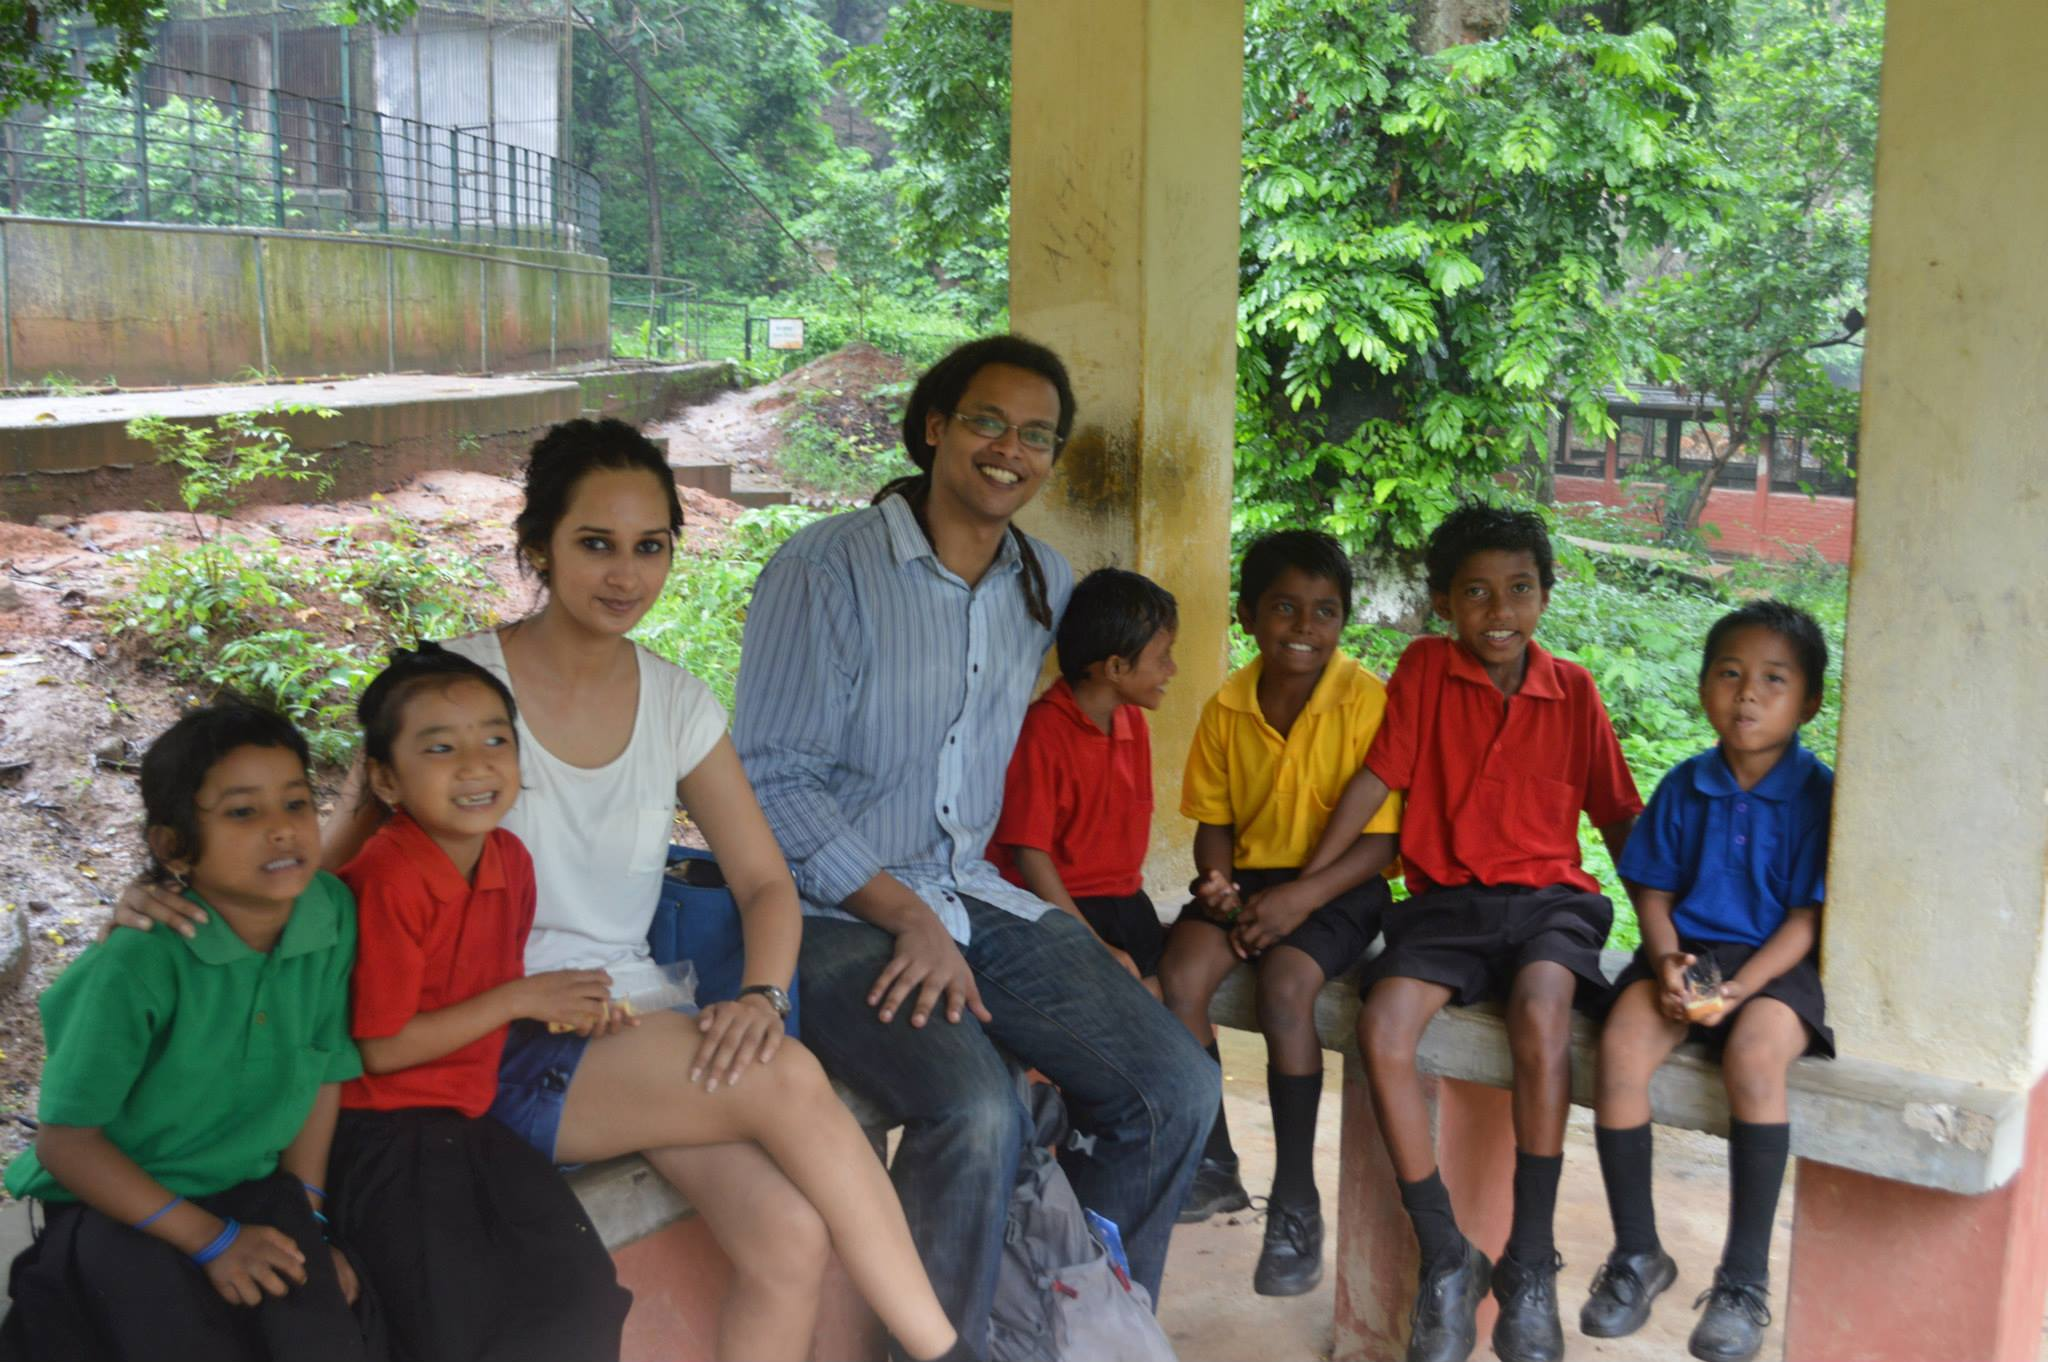 Mazin Mukhtar and Parmita Sarma started Akshar Foundation, an innovative school that takes plastic waste as its monthly school fee.